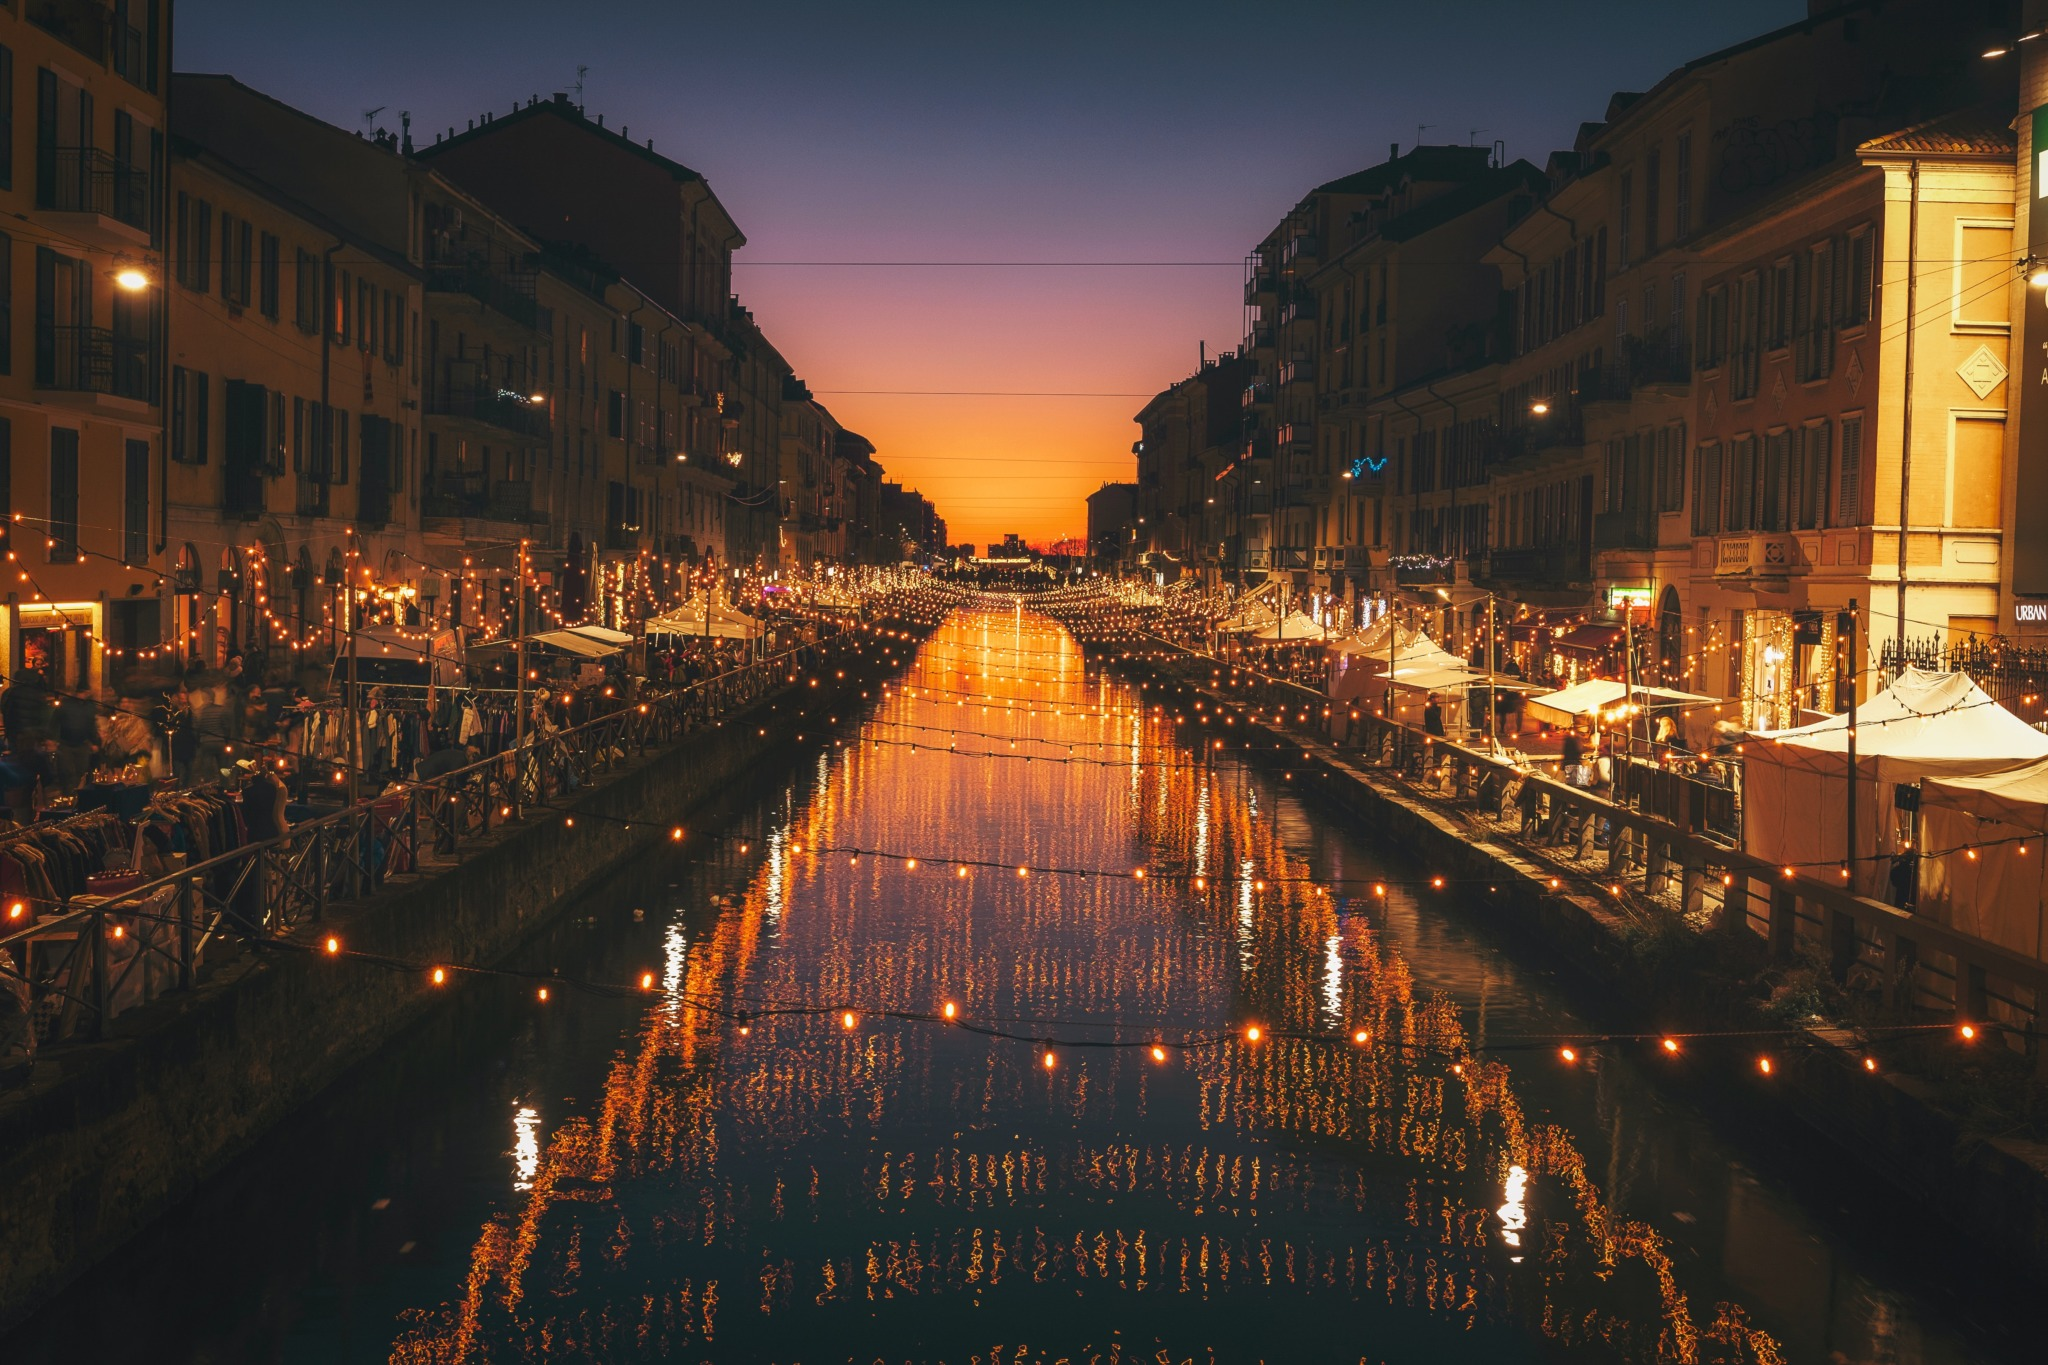 photo of a river in Milan at night with lights strung over it